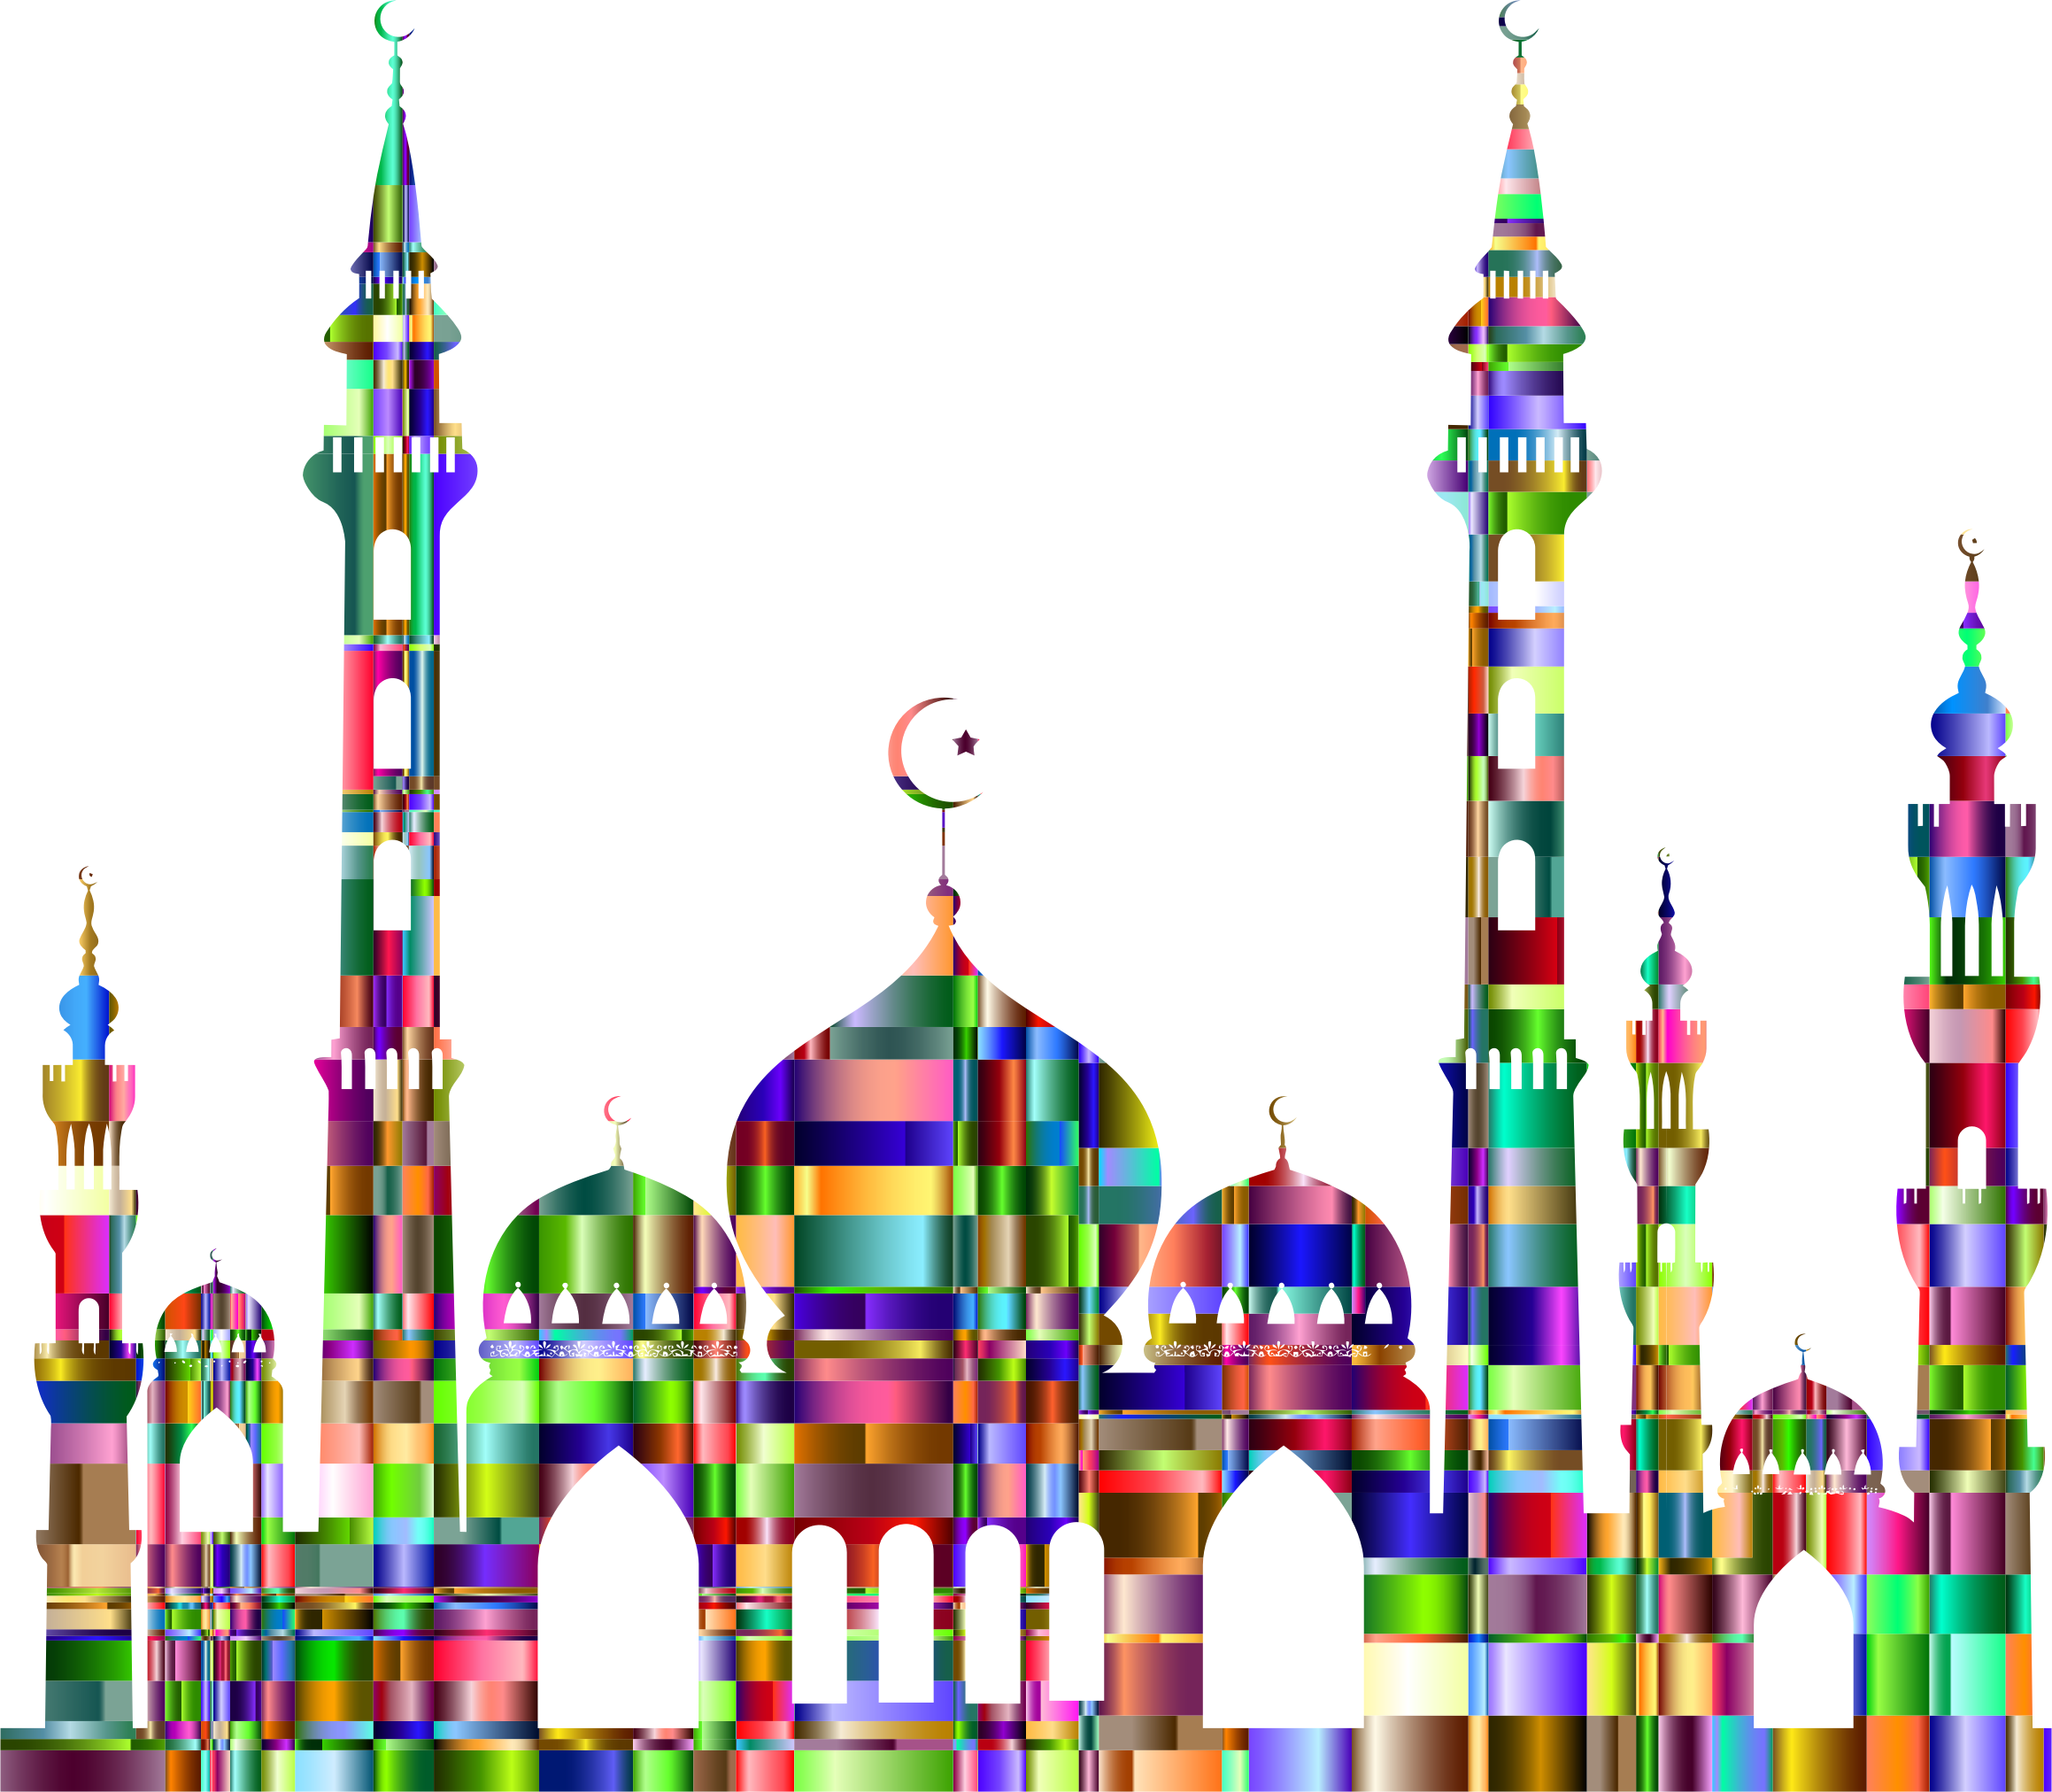 Colorful clipart mosque. Checkered chromatic big image